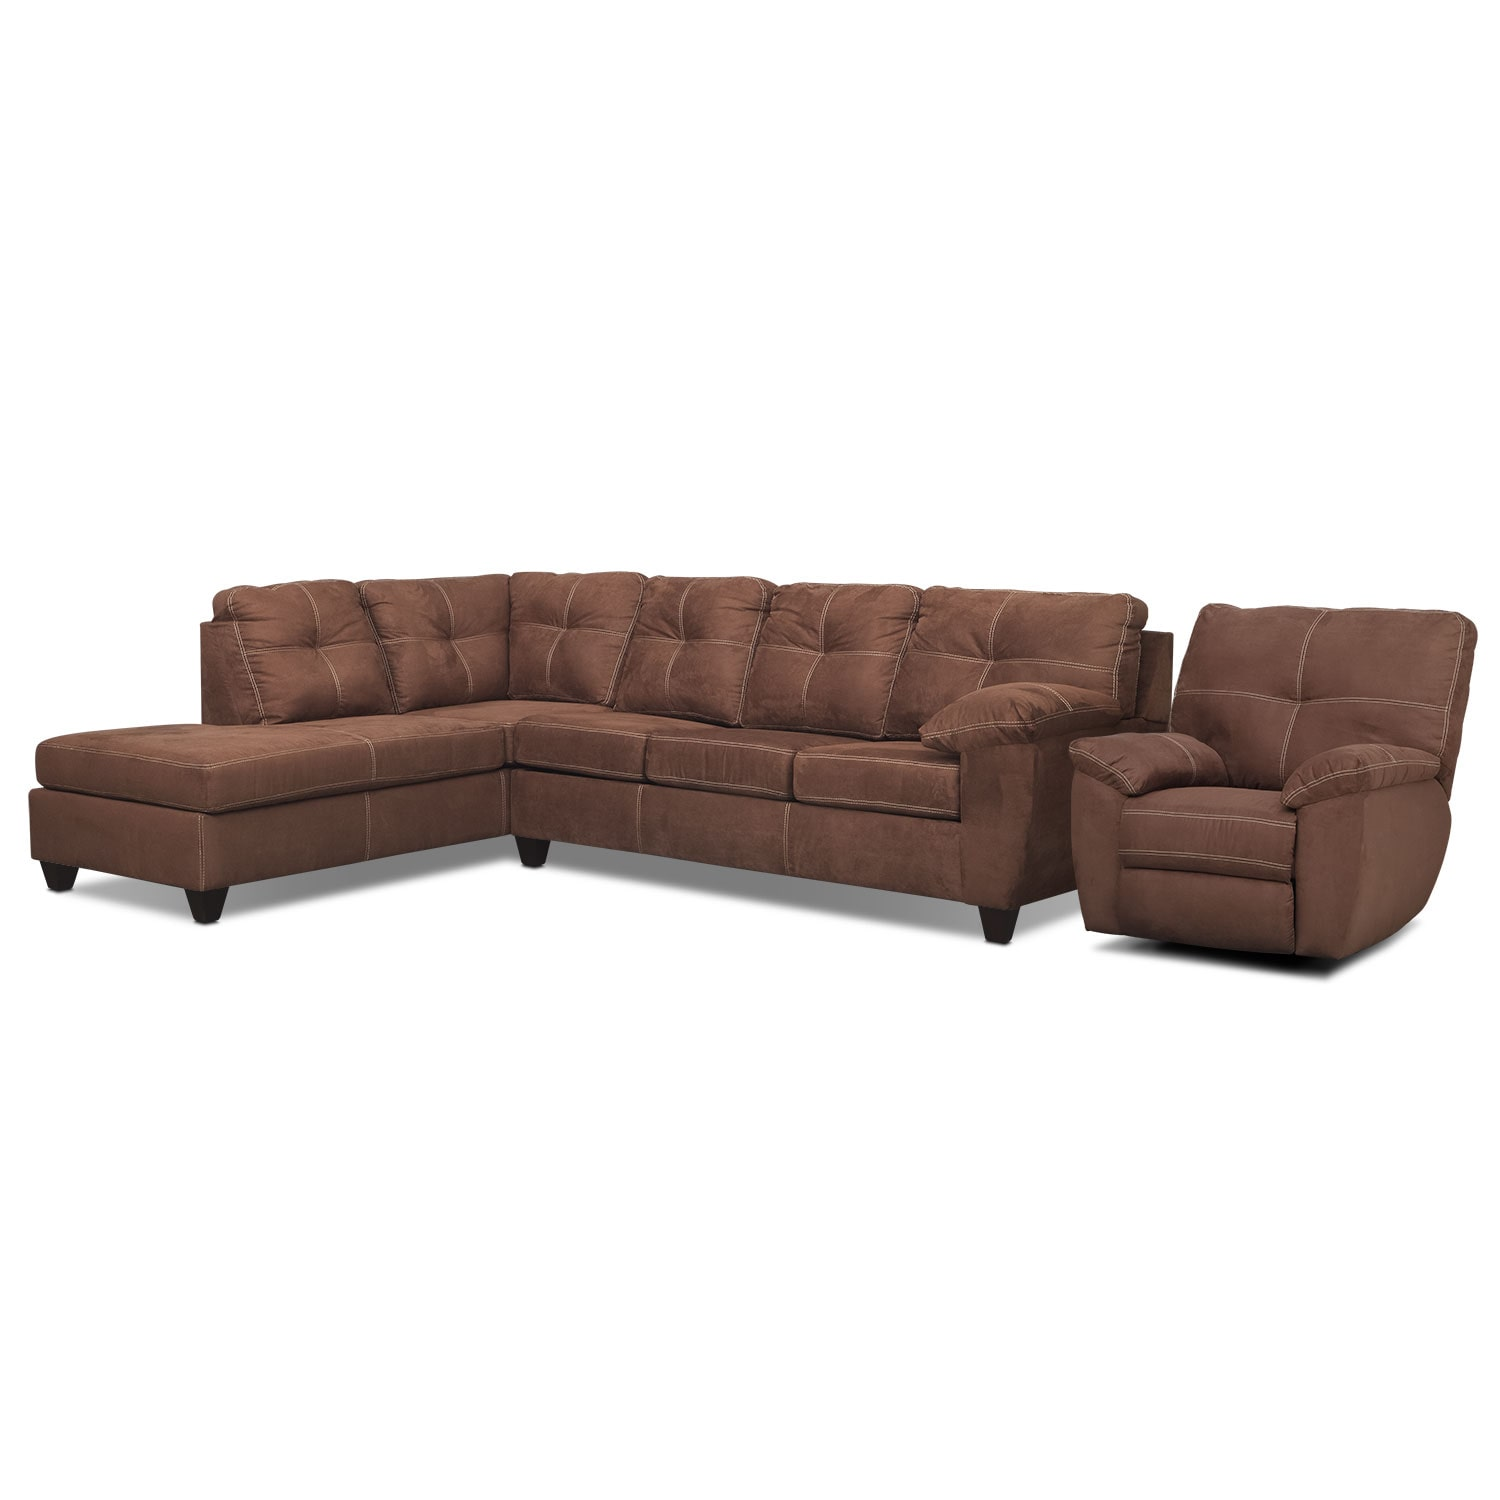 Living Room Furniture - Rialto Coffee 2 Pc. Left-Facing Chaise Sectional and Glider Recliner